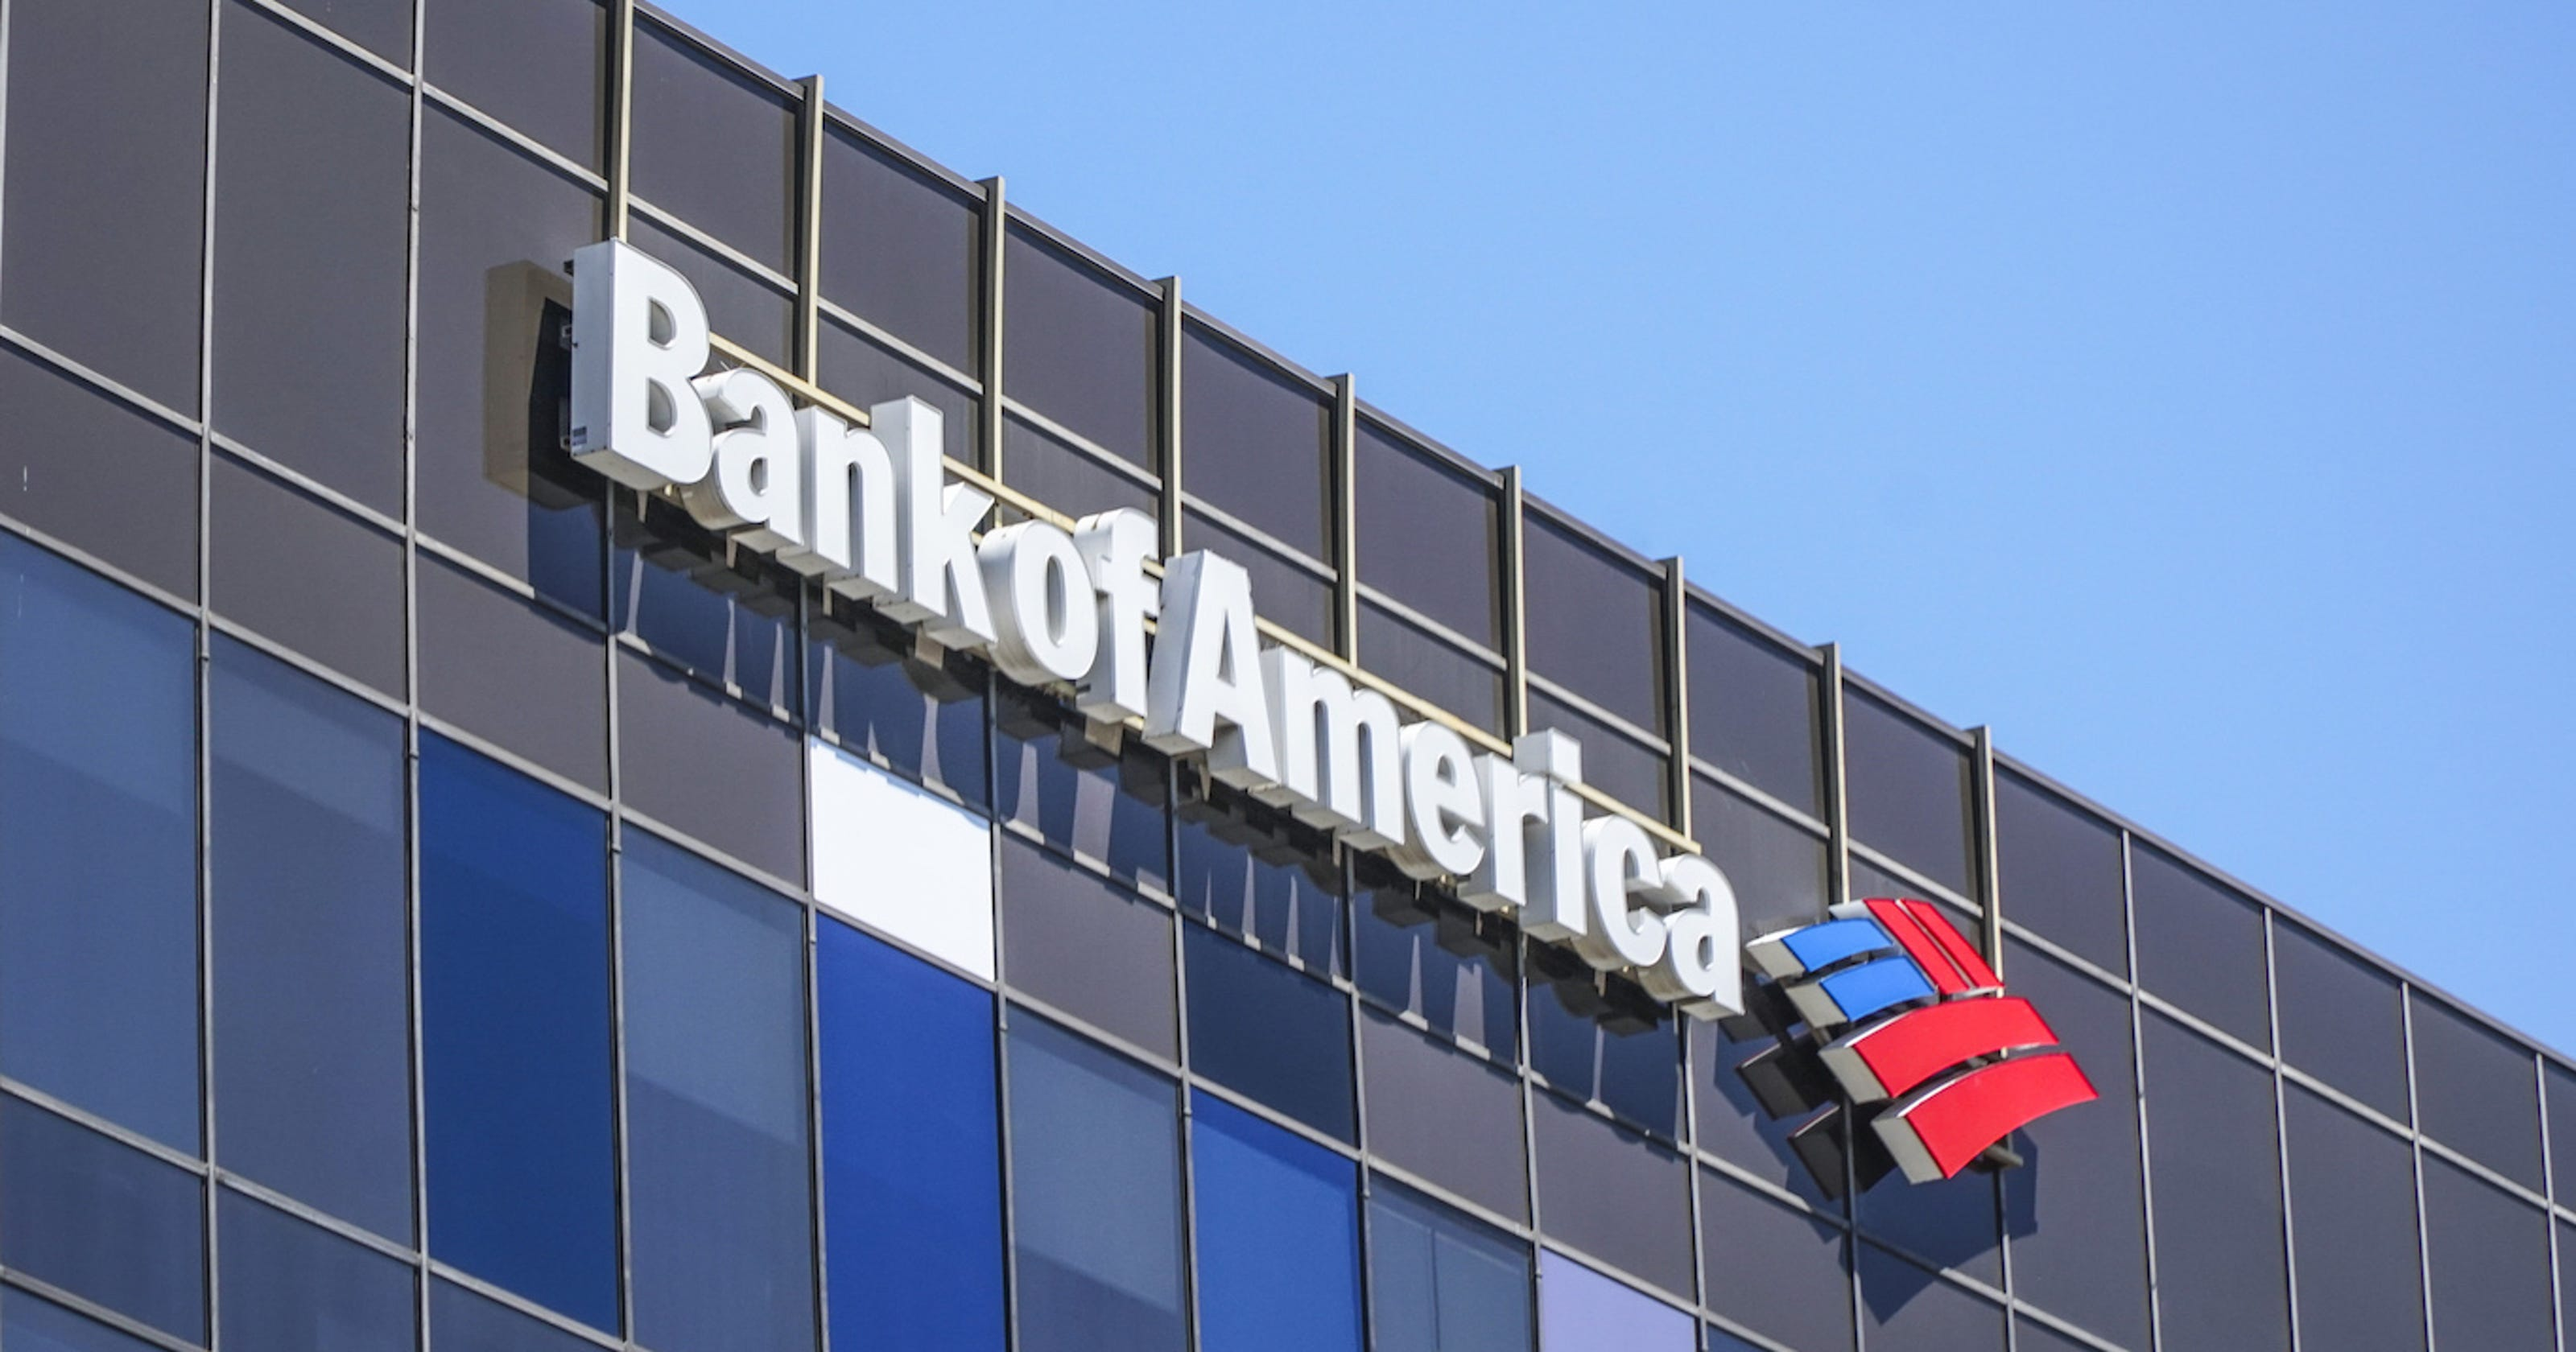 Minimum wage: Bank of America starting pay to reach $20 by 2021